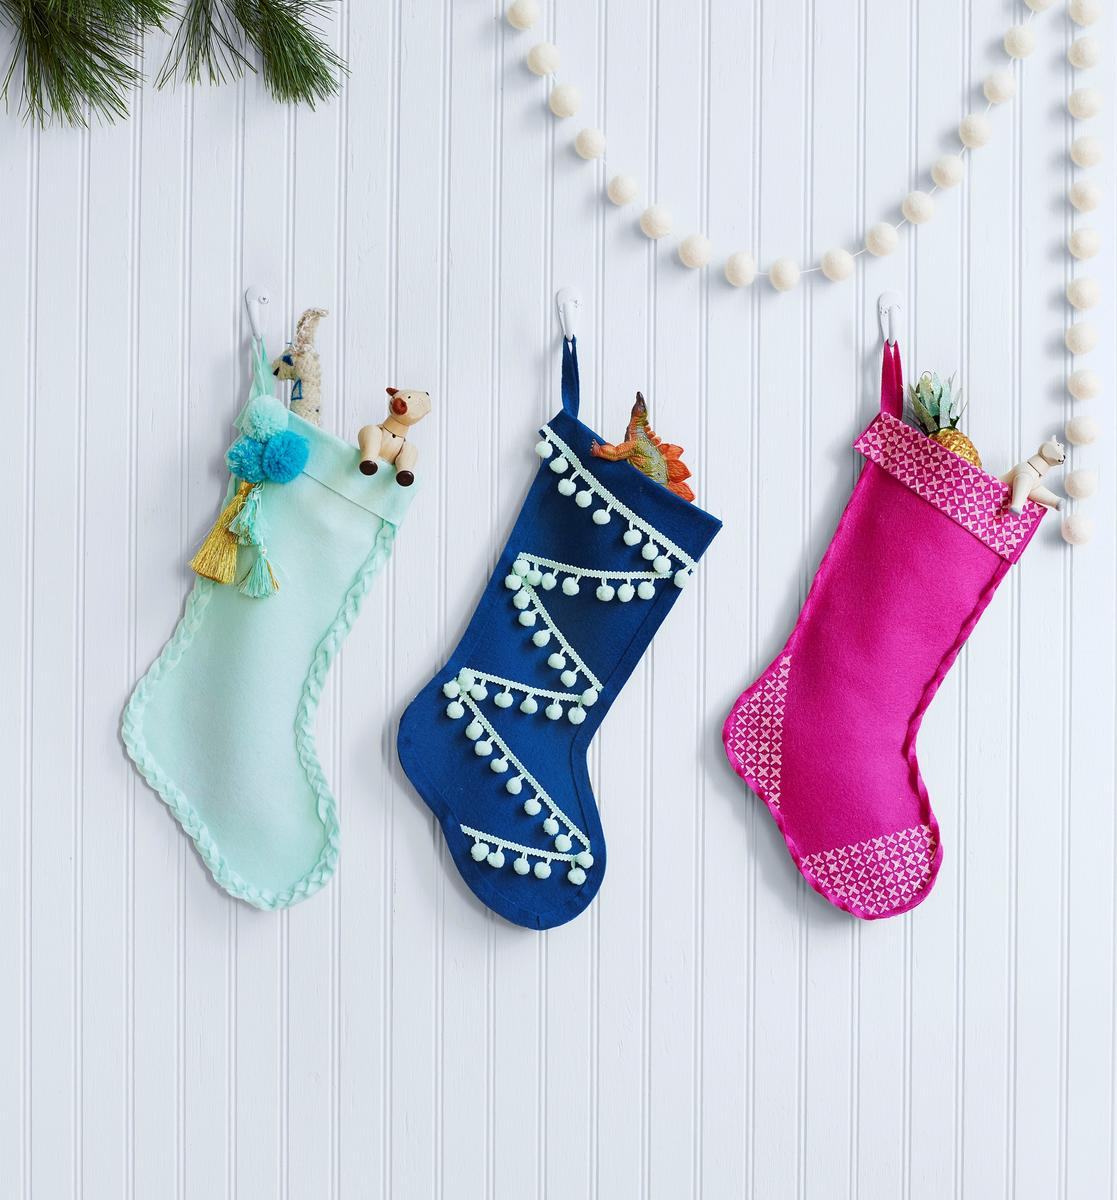 No-Sew Stockings